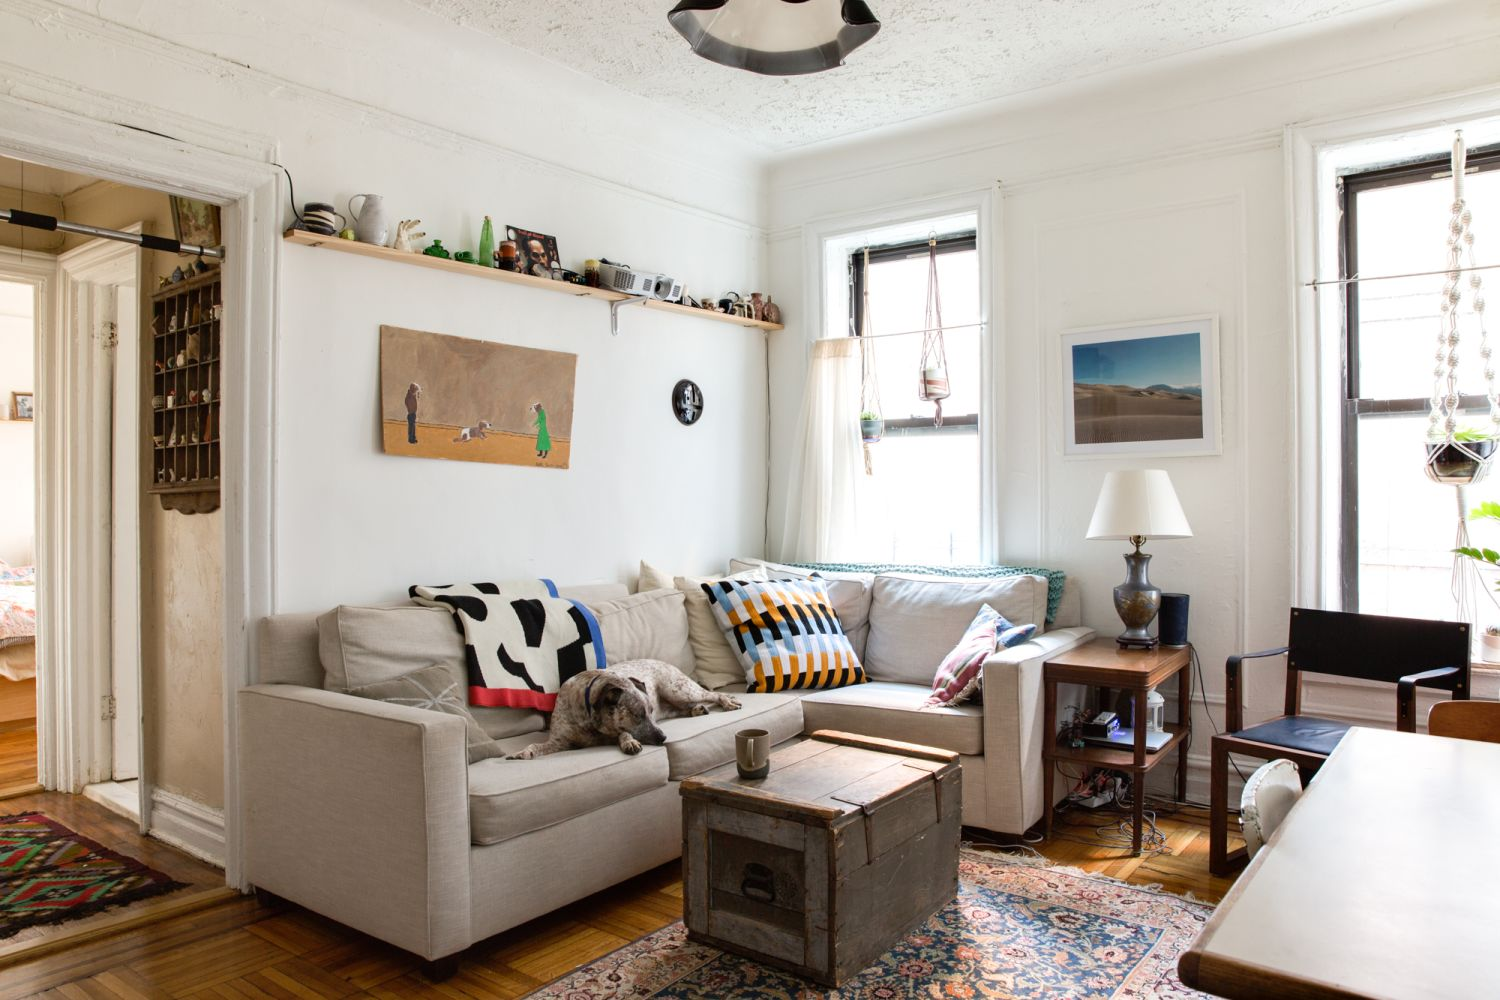 Yes, Helen Levi's Cozy Brooklyn Home Is a Pottery Paradise